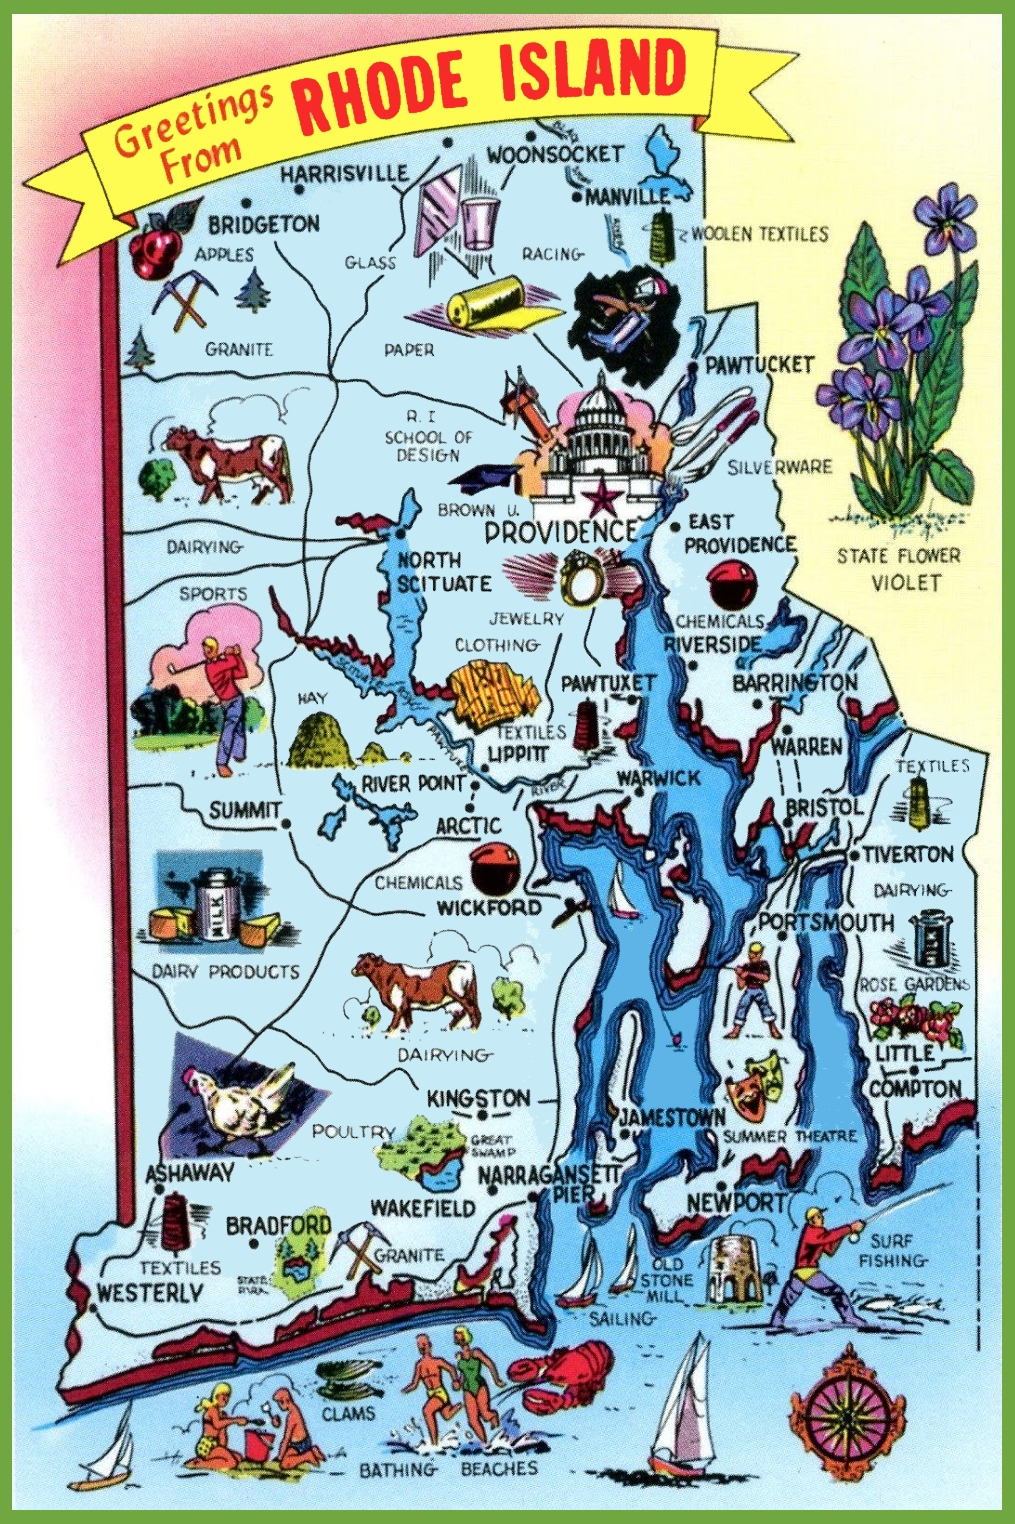 map of ohio and kentucky with cities with Pictorial Travel Map Of Rhode Island on Sagebrush likewise IA Des Moines Skyline in addition Louisiana Lpn Requirements And Training Programs likewise Minnesota besides 589797.